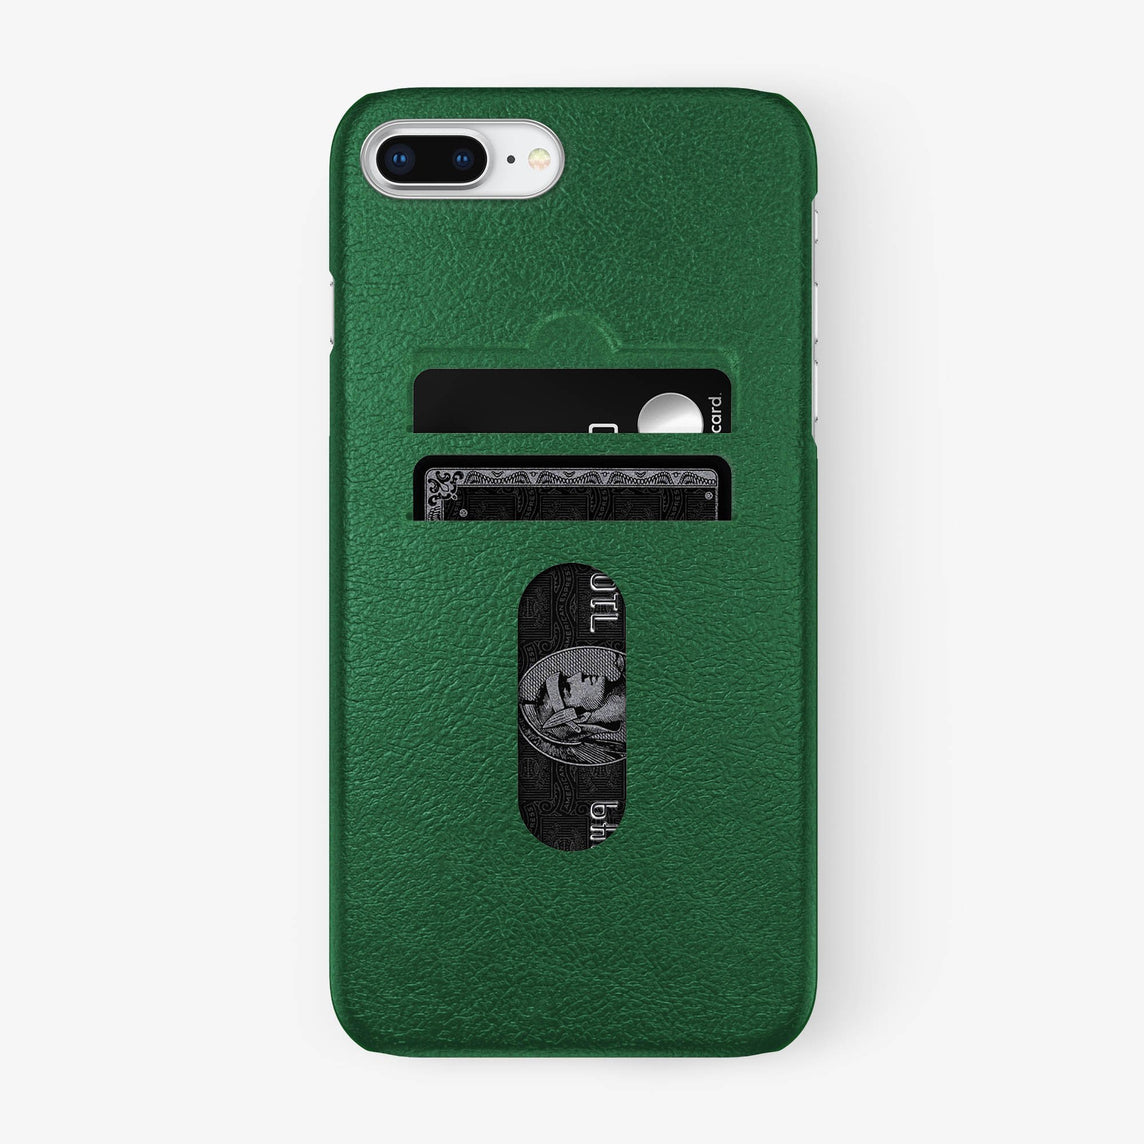 Calfskin Card Holder Case iPhone 7/8 Plus | Green - Stainless Steel